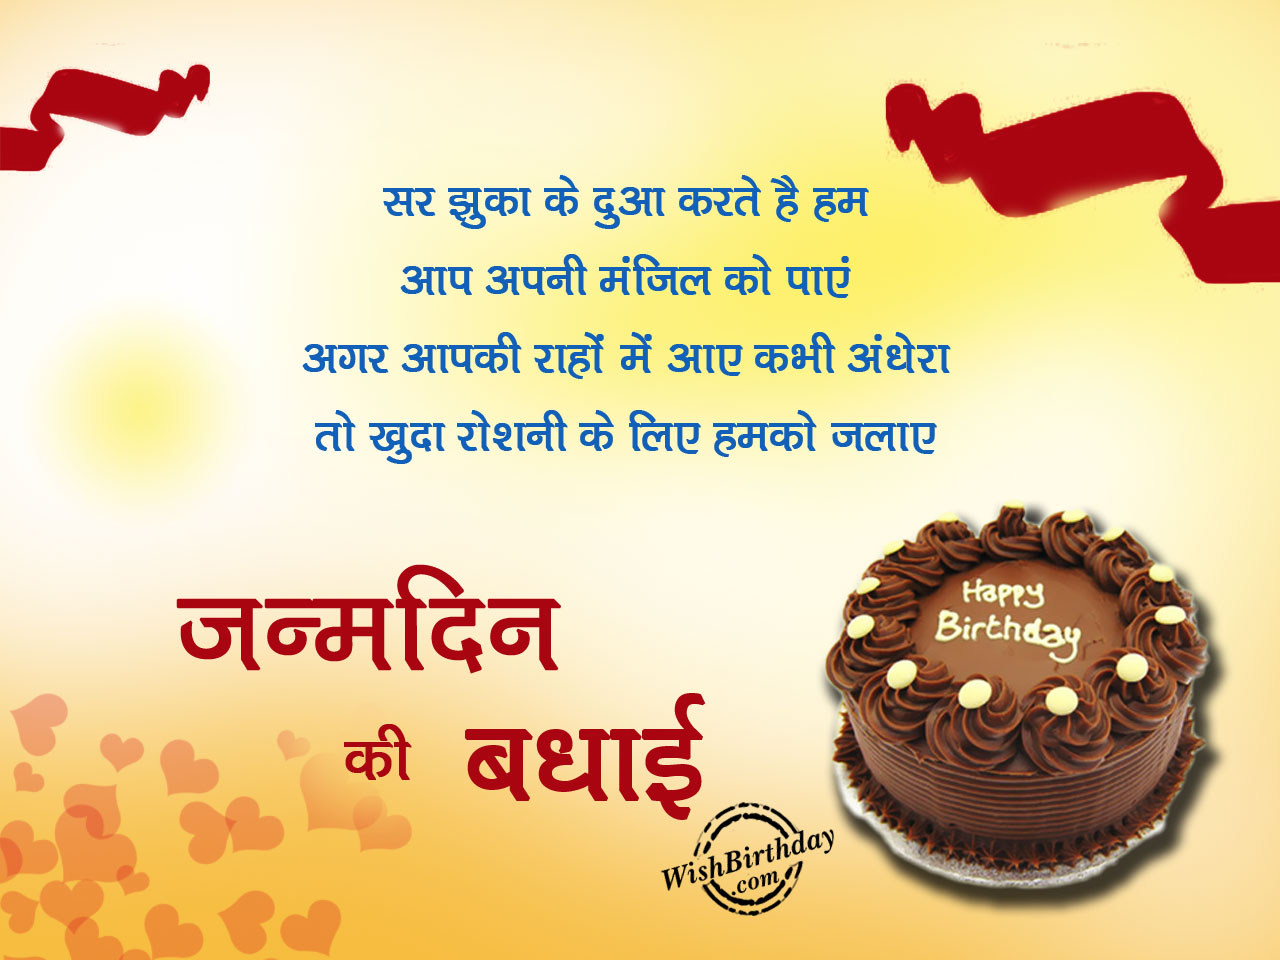 Birthday wishes in hindi birthday images pictures sar jhuka k dua karte hain hum kristyandbryce Gallery